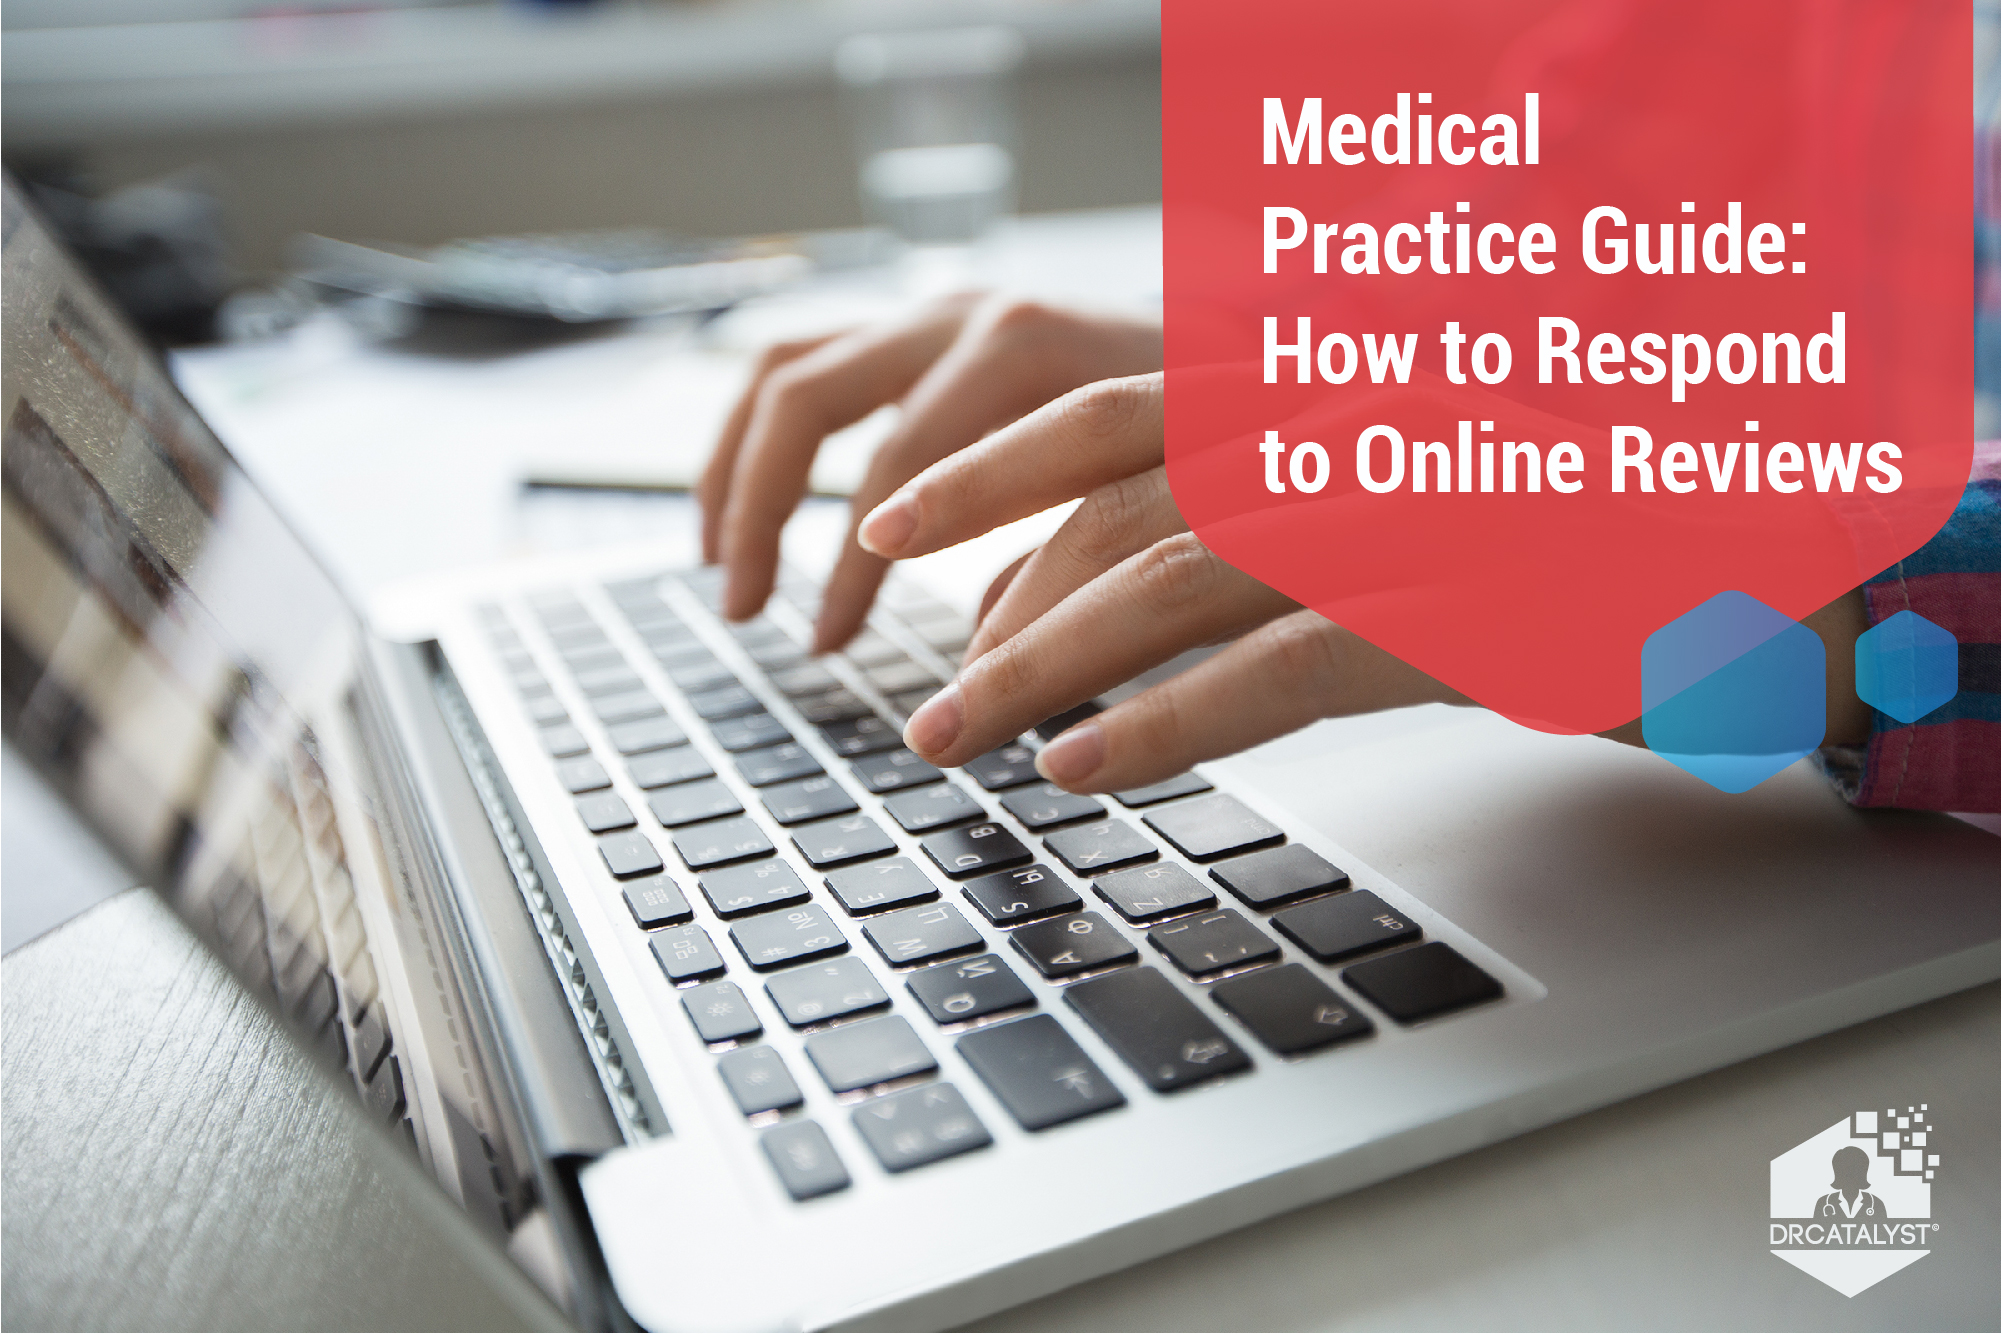 Medical Practice Guide